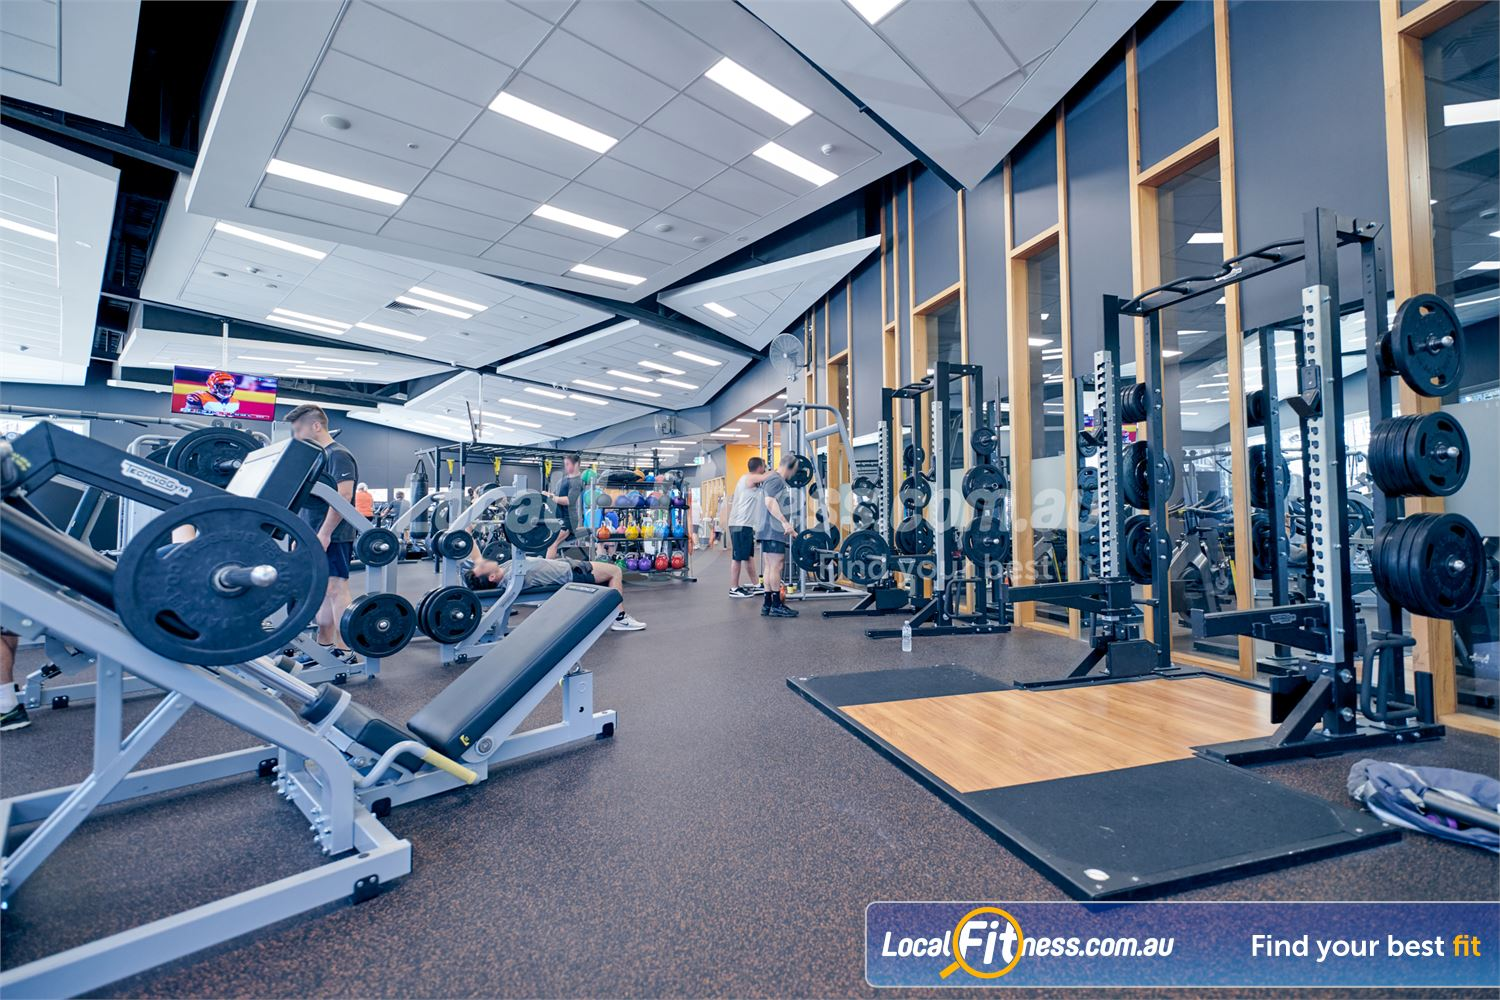 Eltham Leisure Centre Near Templestowe The fully equipped free-weights area at the Eltham gym.